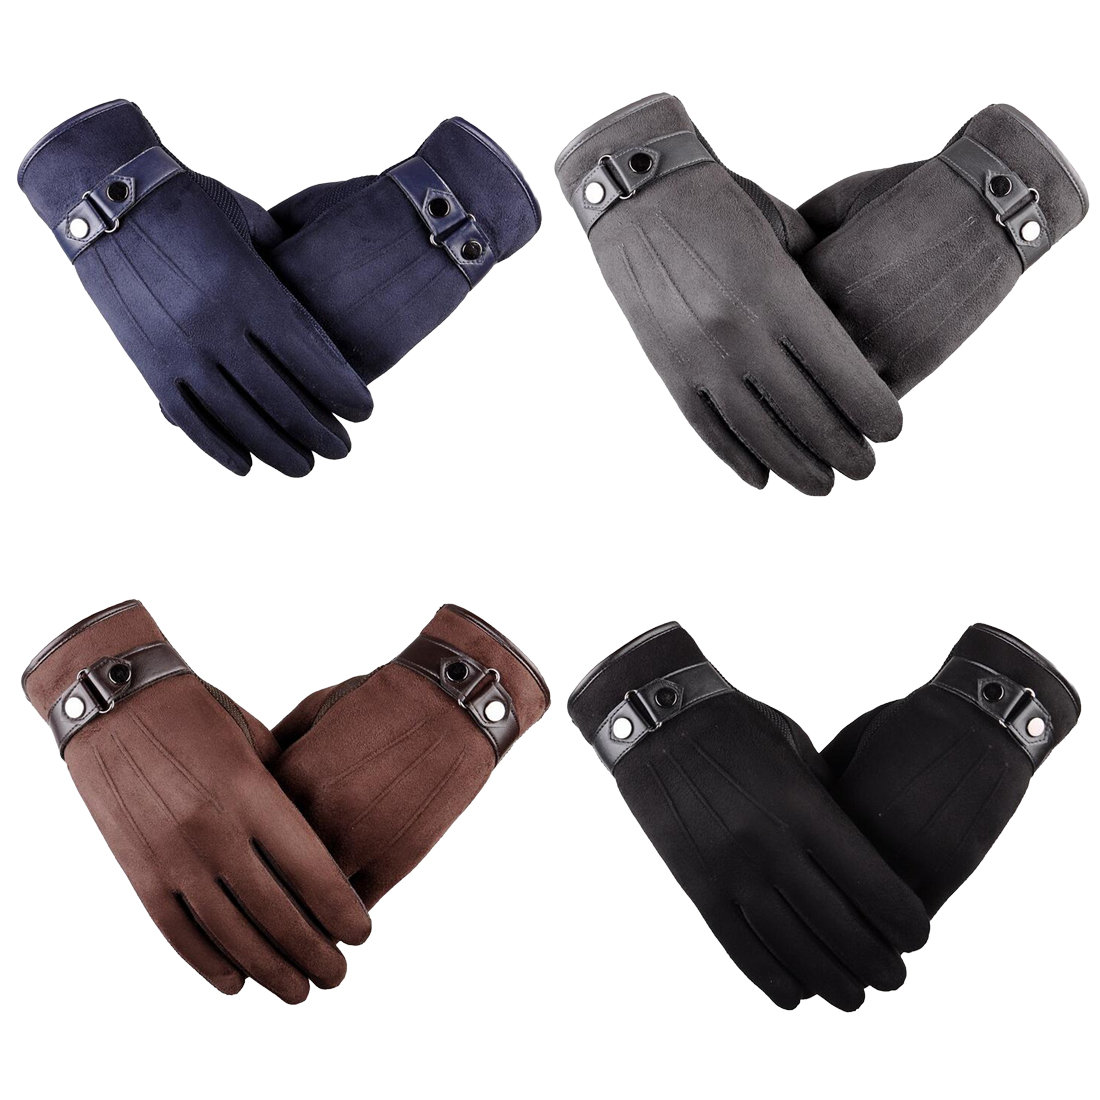 Cooperative Autumn Winter Gloves Men Thicken Warm Cashmere Thermal Mittens Male Touching Screen Gloves For Smart Phone/ipad To Be Distributed All Over The World